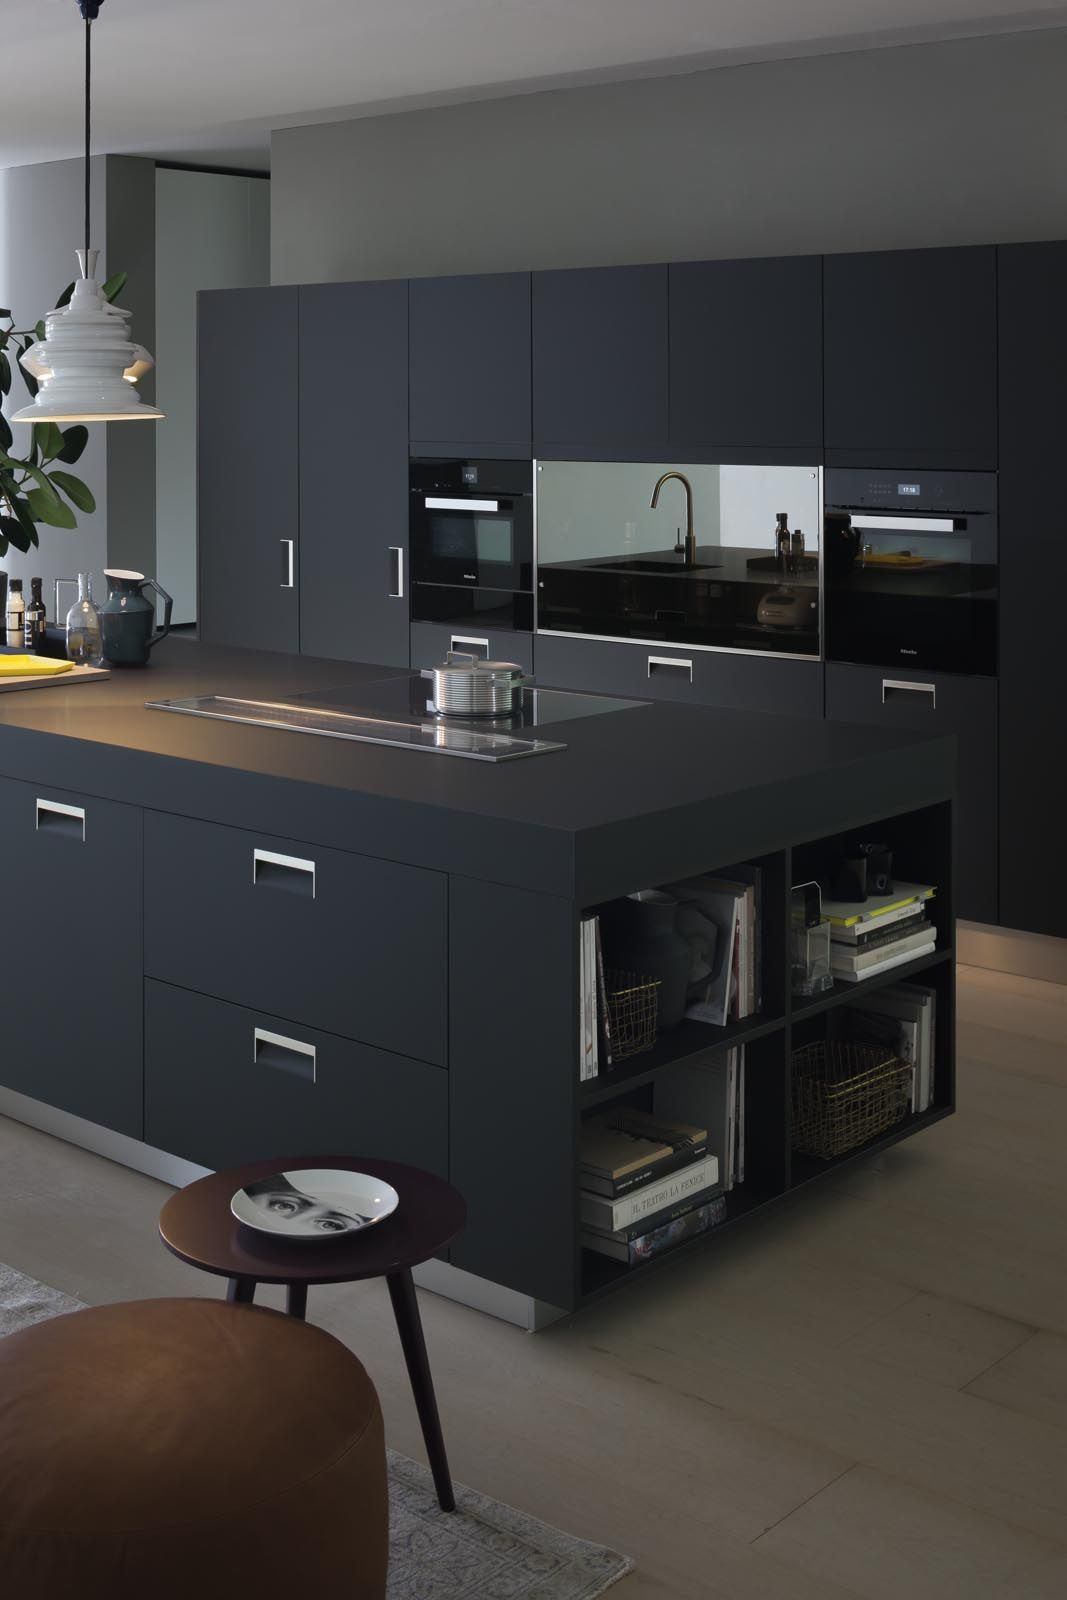 dunstabzug in der arbeitsplatte arclinea italia handle in black armour finish cabinets top. Black Bedroom Furniture Sets. Home Design Ideas